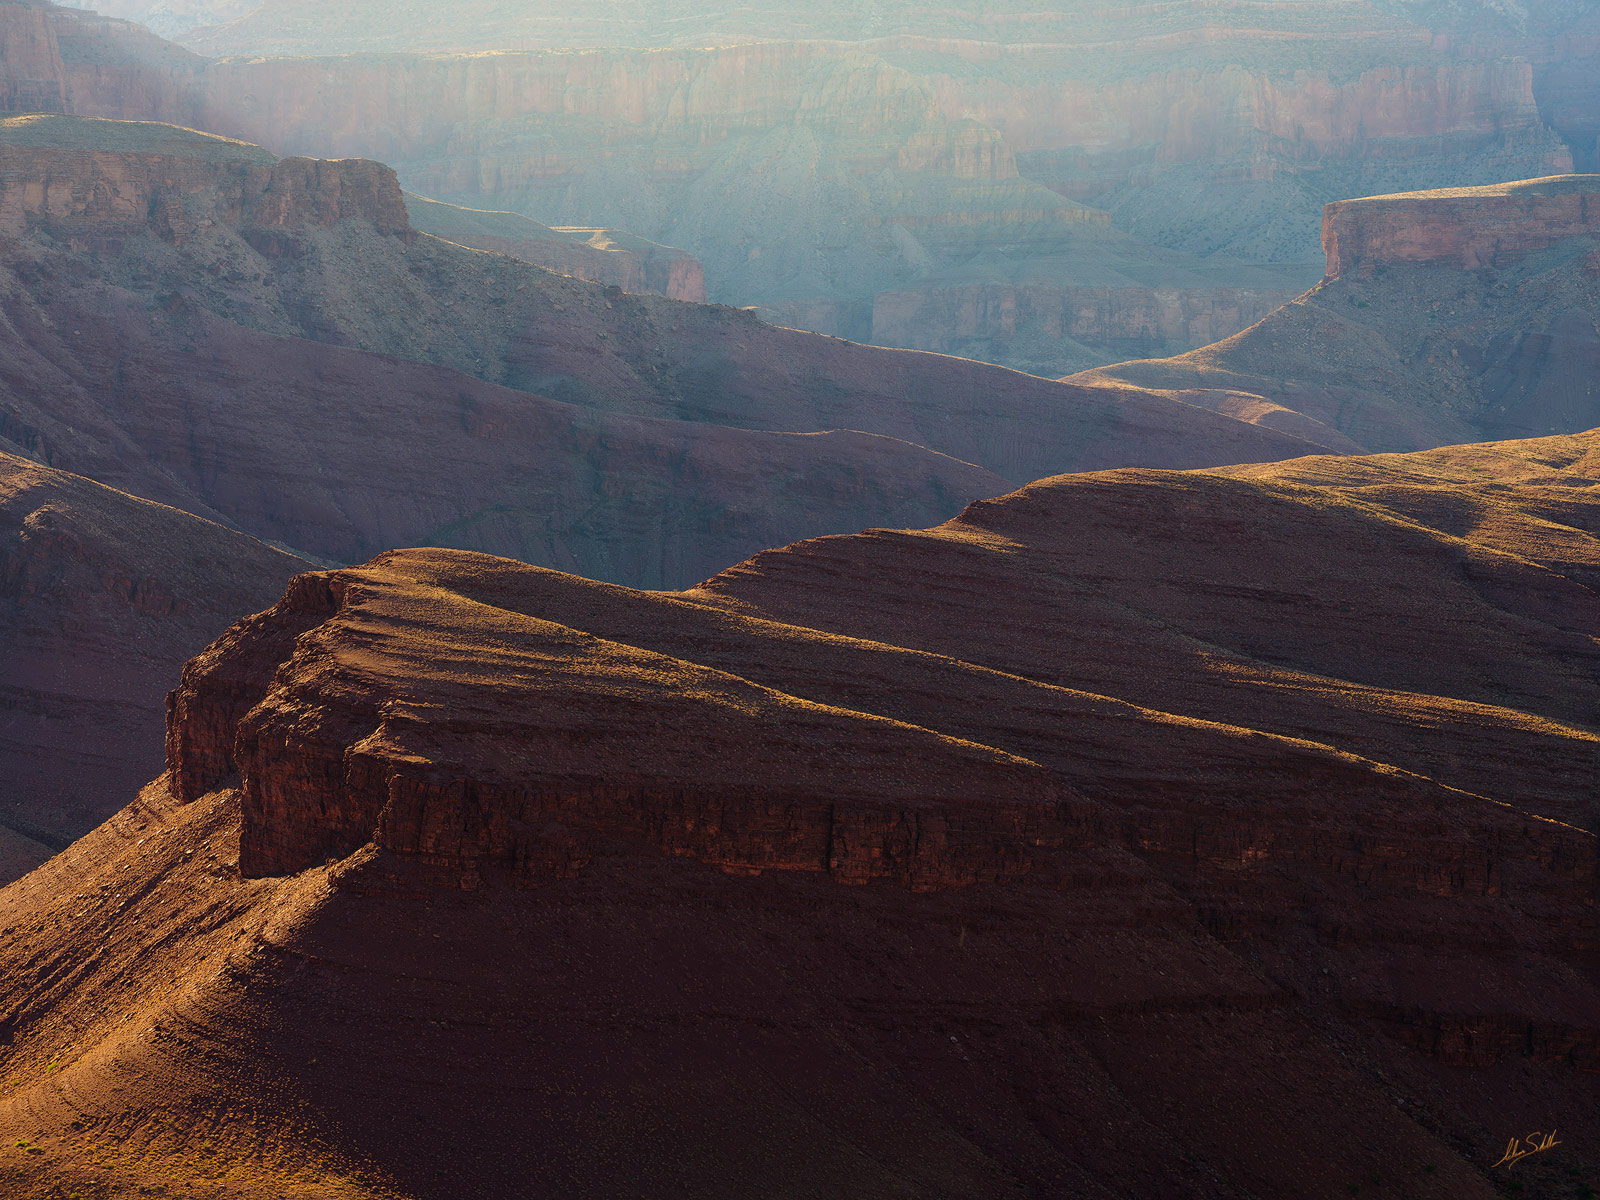 Late afternoon light glances across the rolling terrain above Unkar Creek in Grand Canyon National Park.